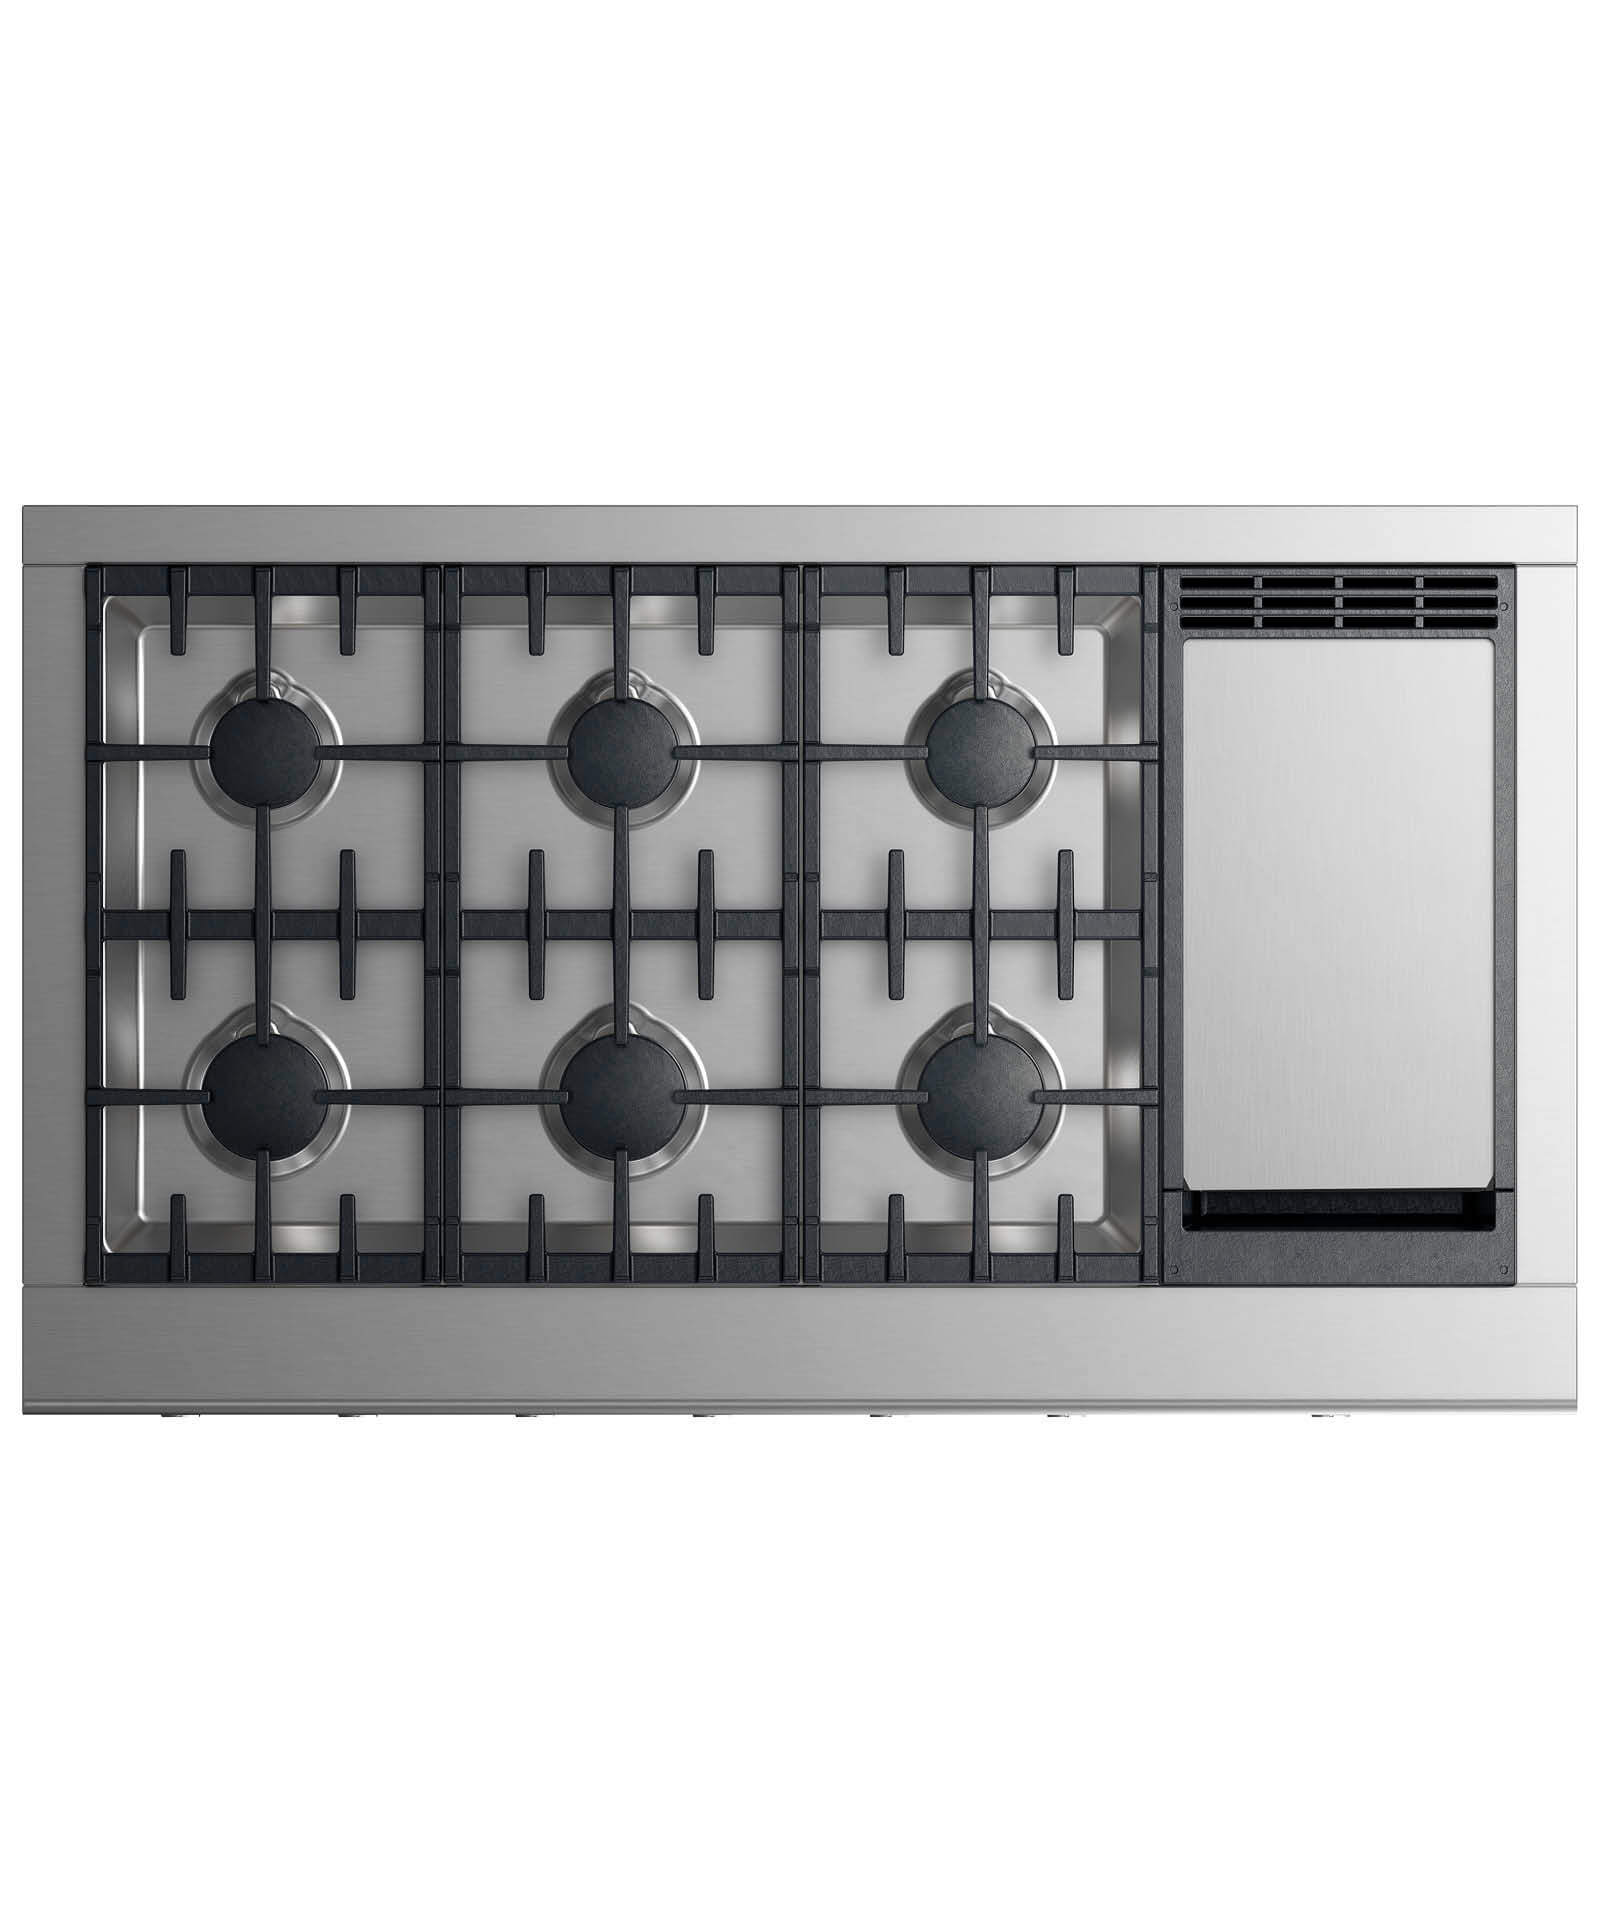 "Fisher and Paykel Gas Rangetop 48"", 6 burners with griddle (LPG)"